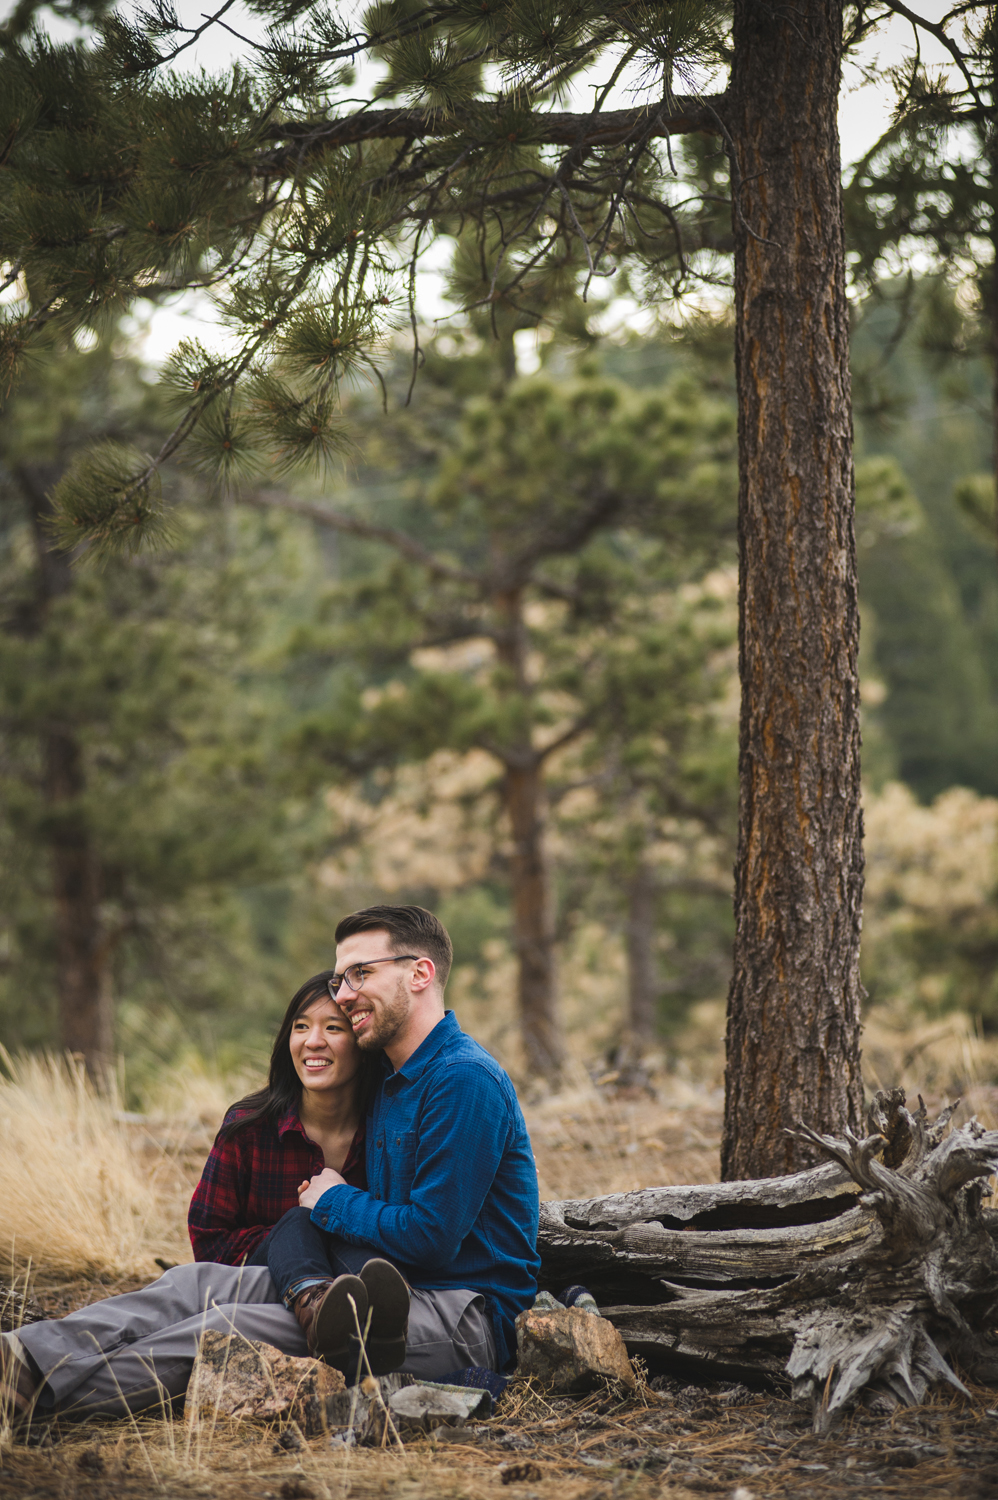 TiffanyandMark_Engaged_0889_squarespace.jpg